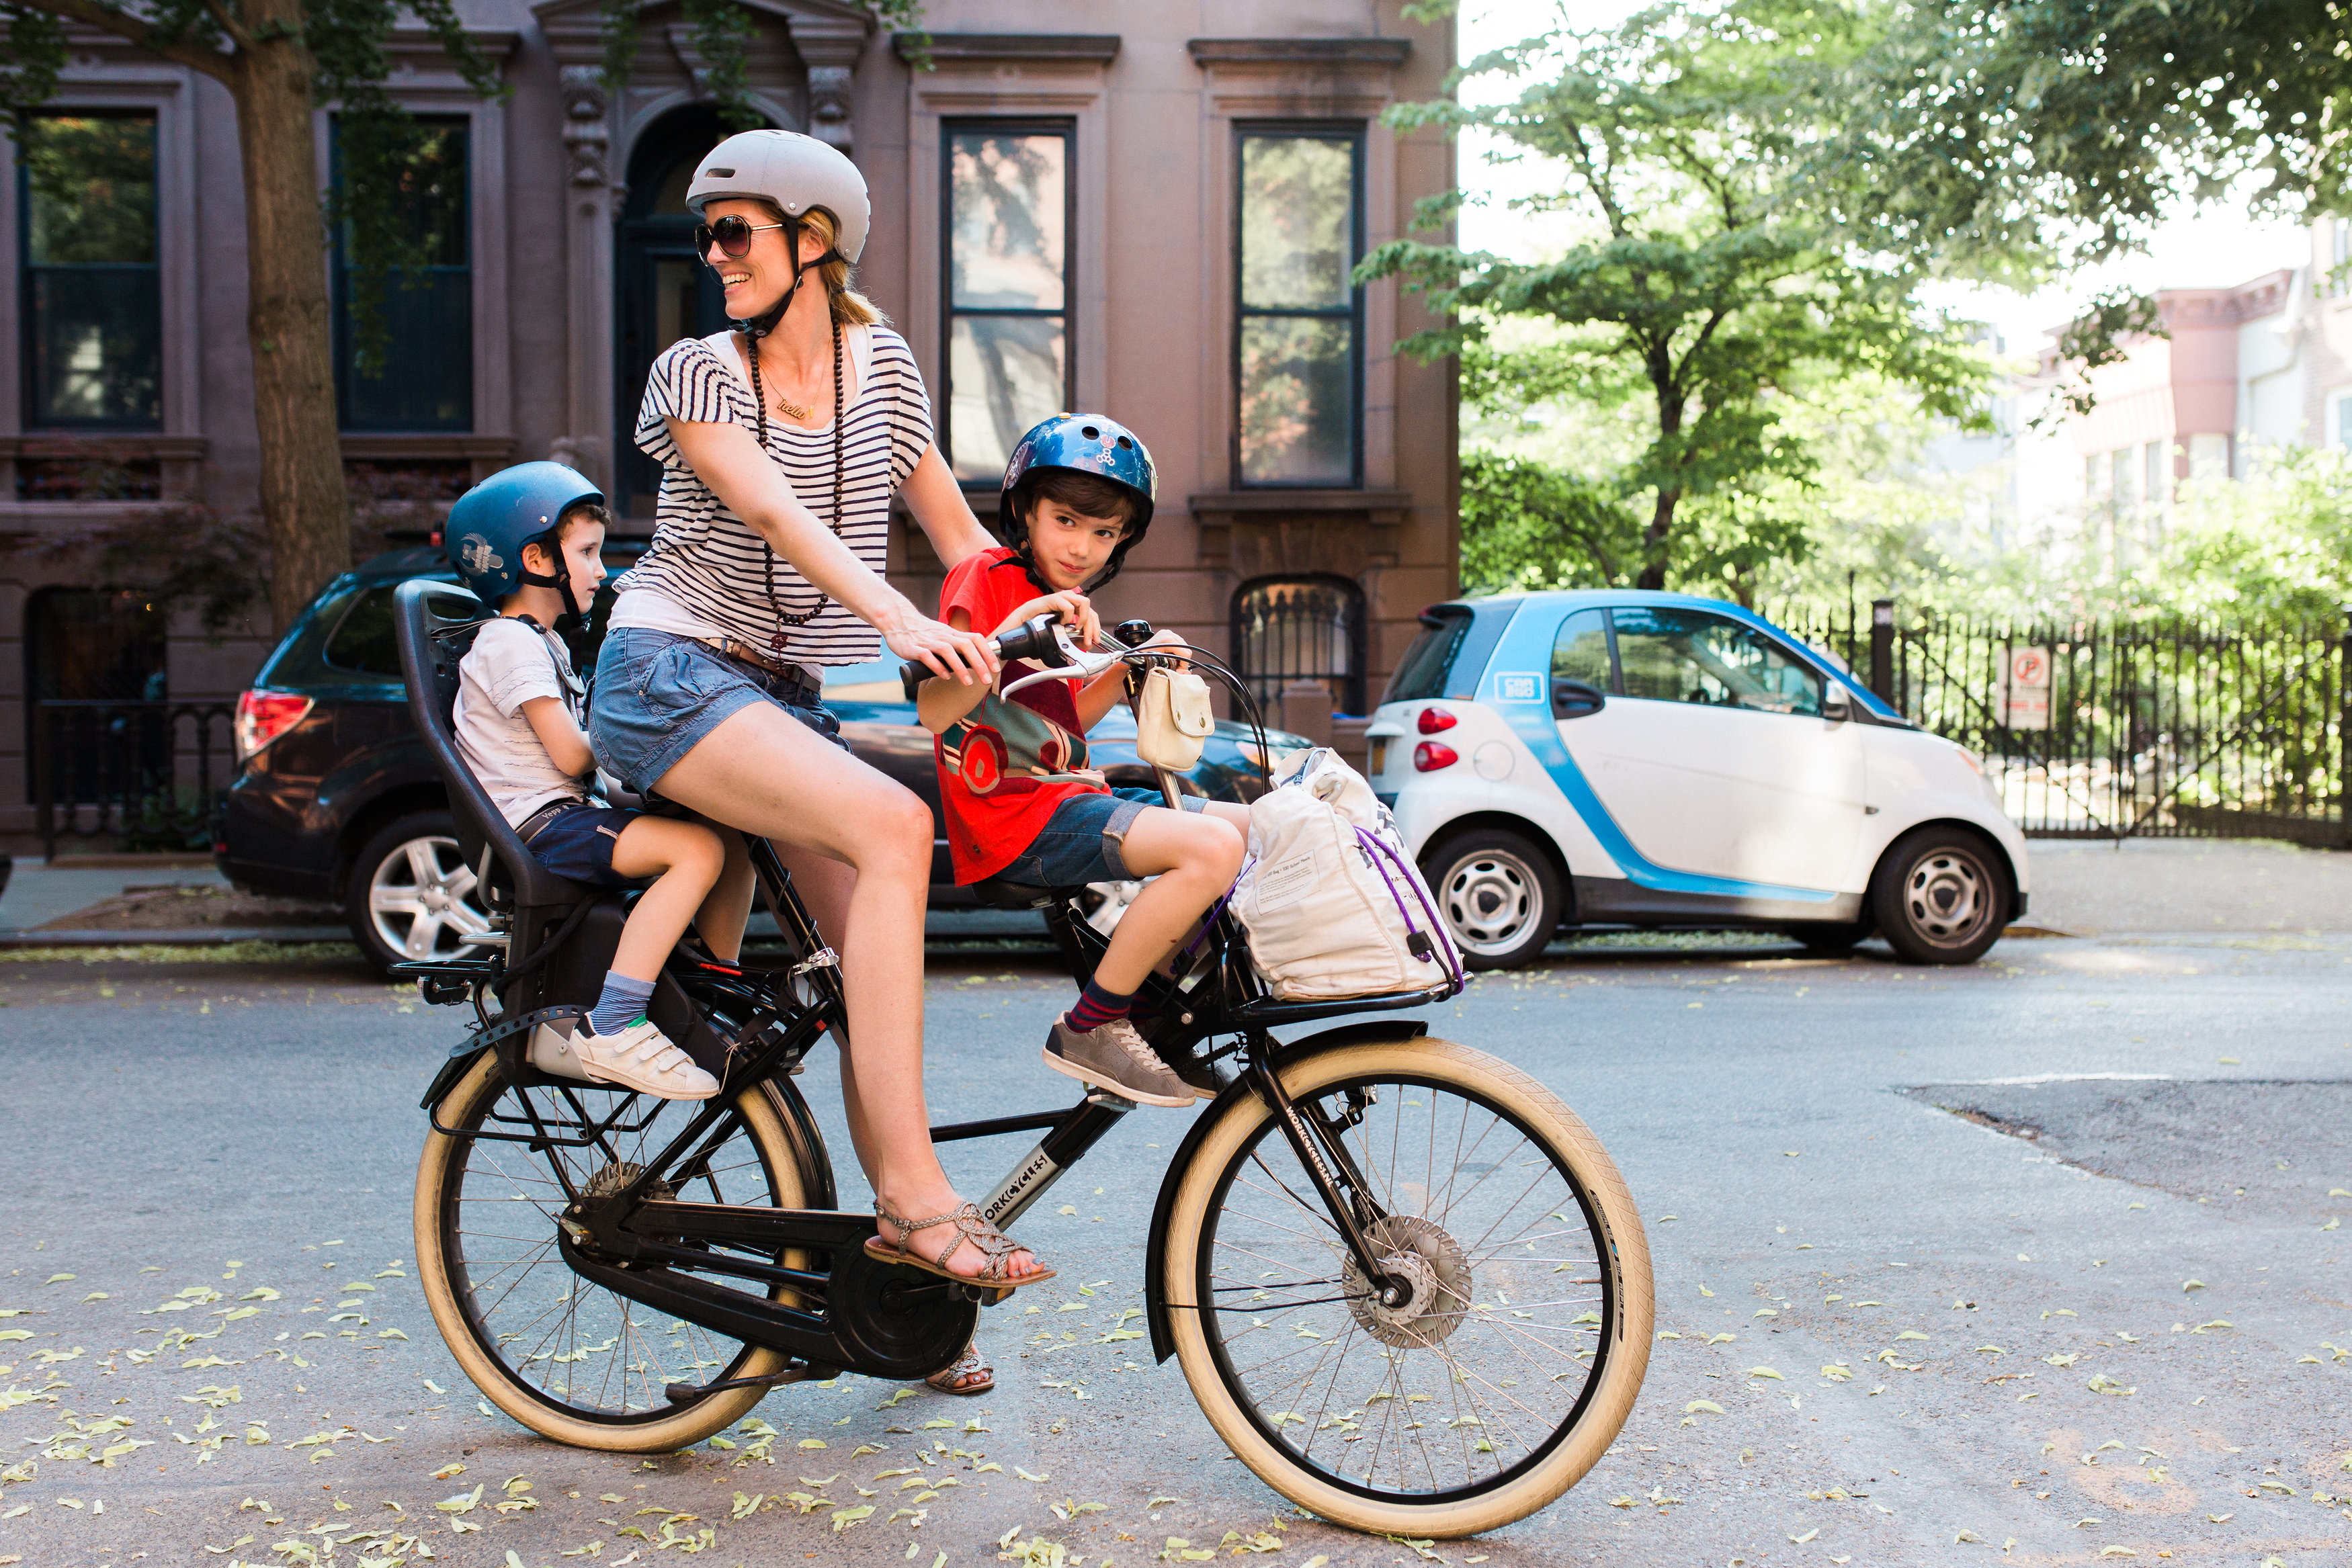 Riding Bikes Brooklyn With Multiple Kids Bike World